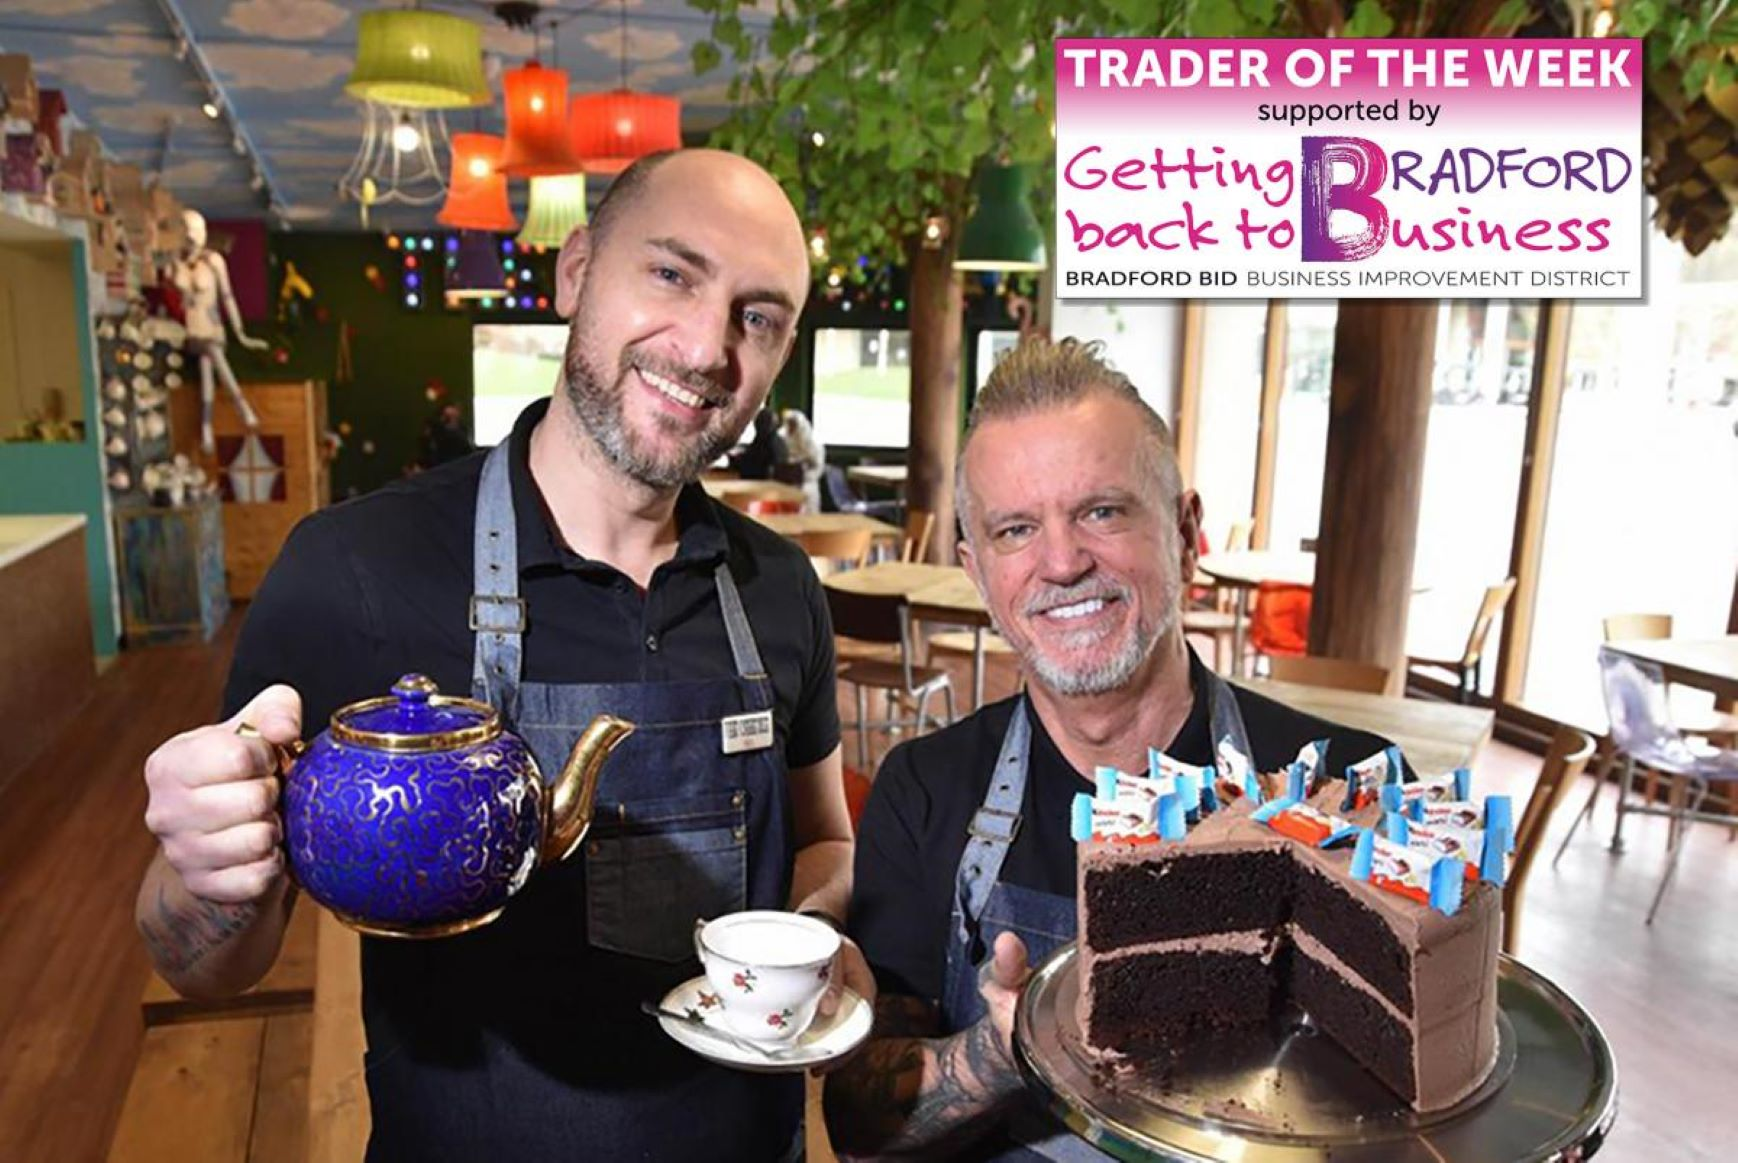 Trader of the Week – Cake'ole